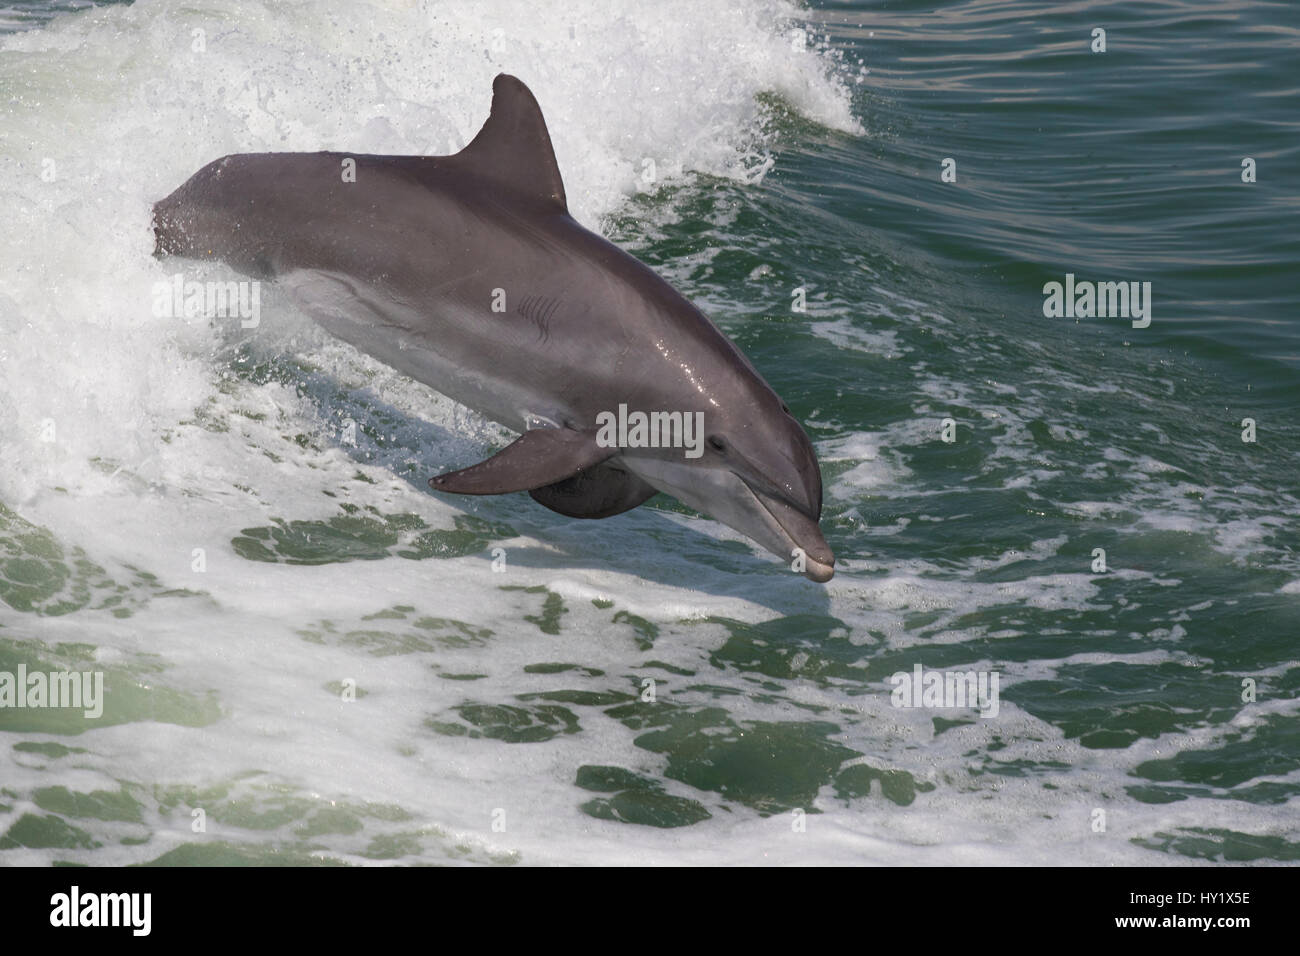 Atlantic bottlenose dolphin (Tursiops truncatus) leaping wild and natural. Boca Ciega Bay (part of Tampa Bay), Florida, Stock Photo